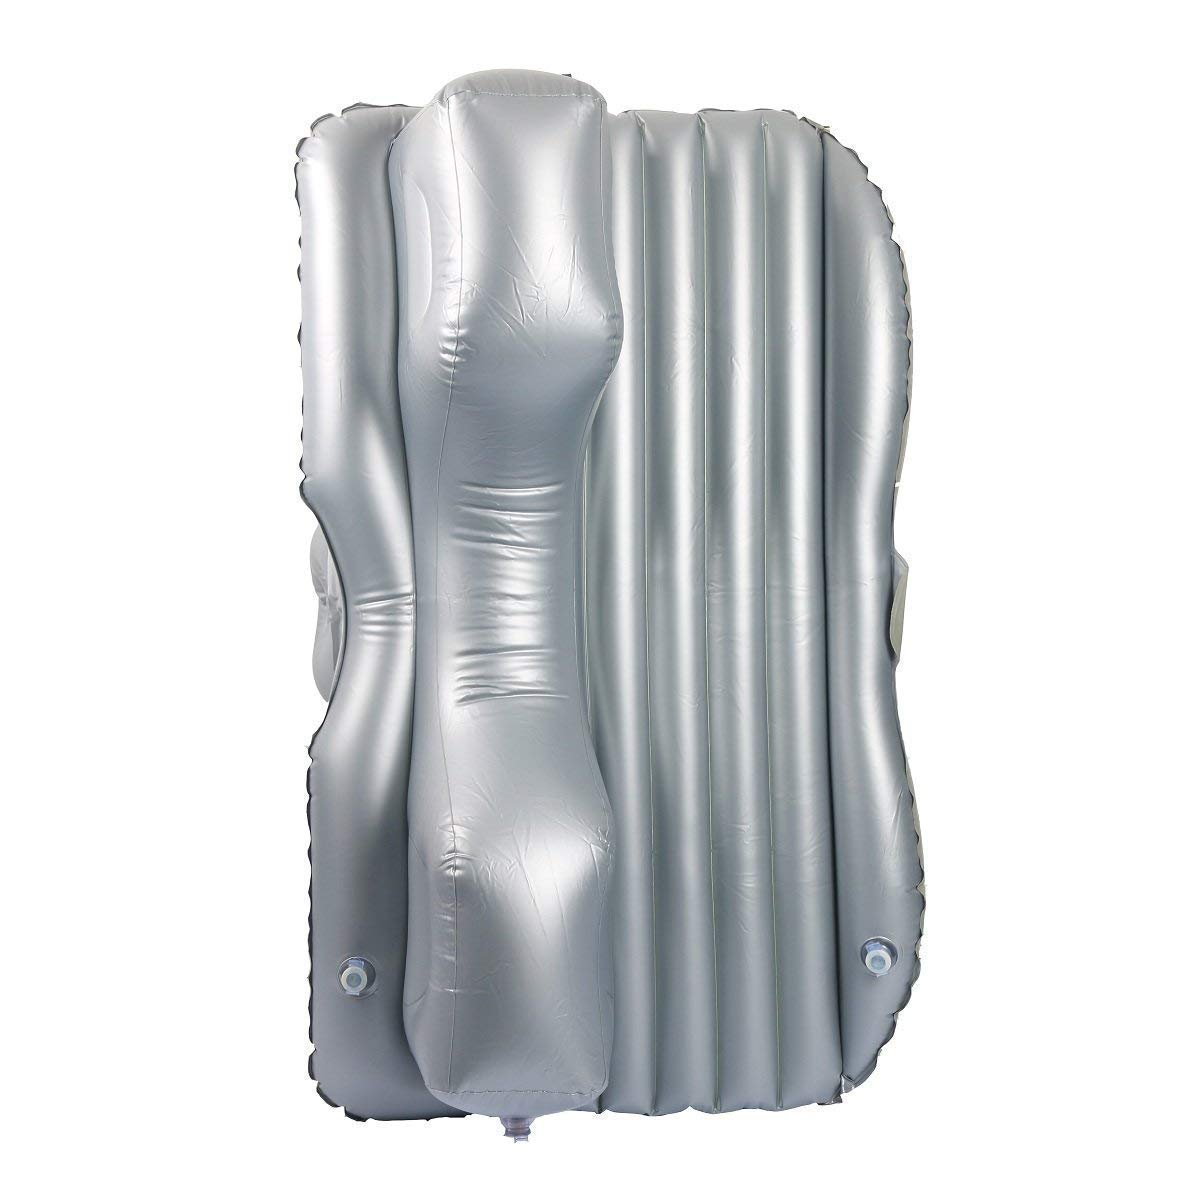 Jeeps SUVs and Mid-size Trucks Outdoor Travel 8milelake Auto Car Inflatable AirBed Mattress Universal with Two Air Pillows for Back Seat of Cars Grey